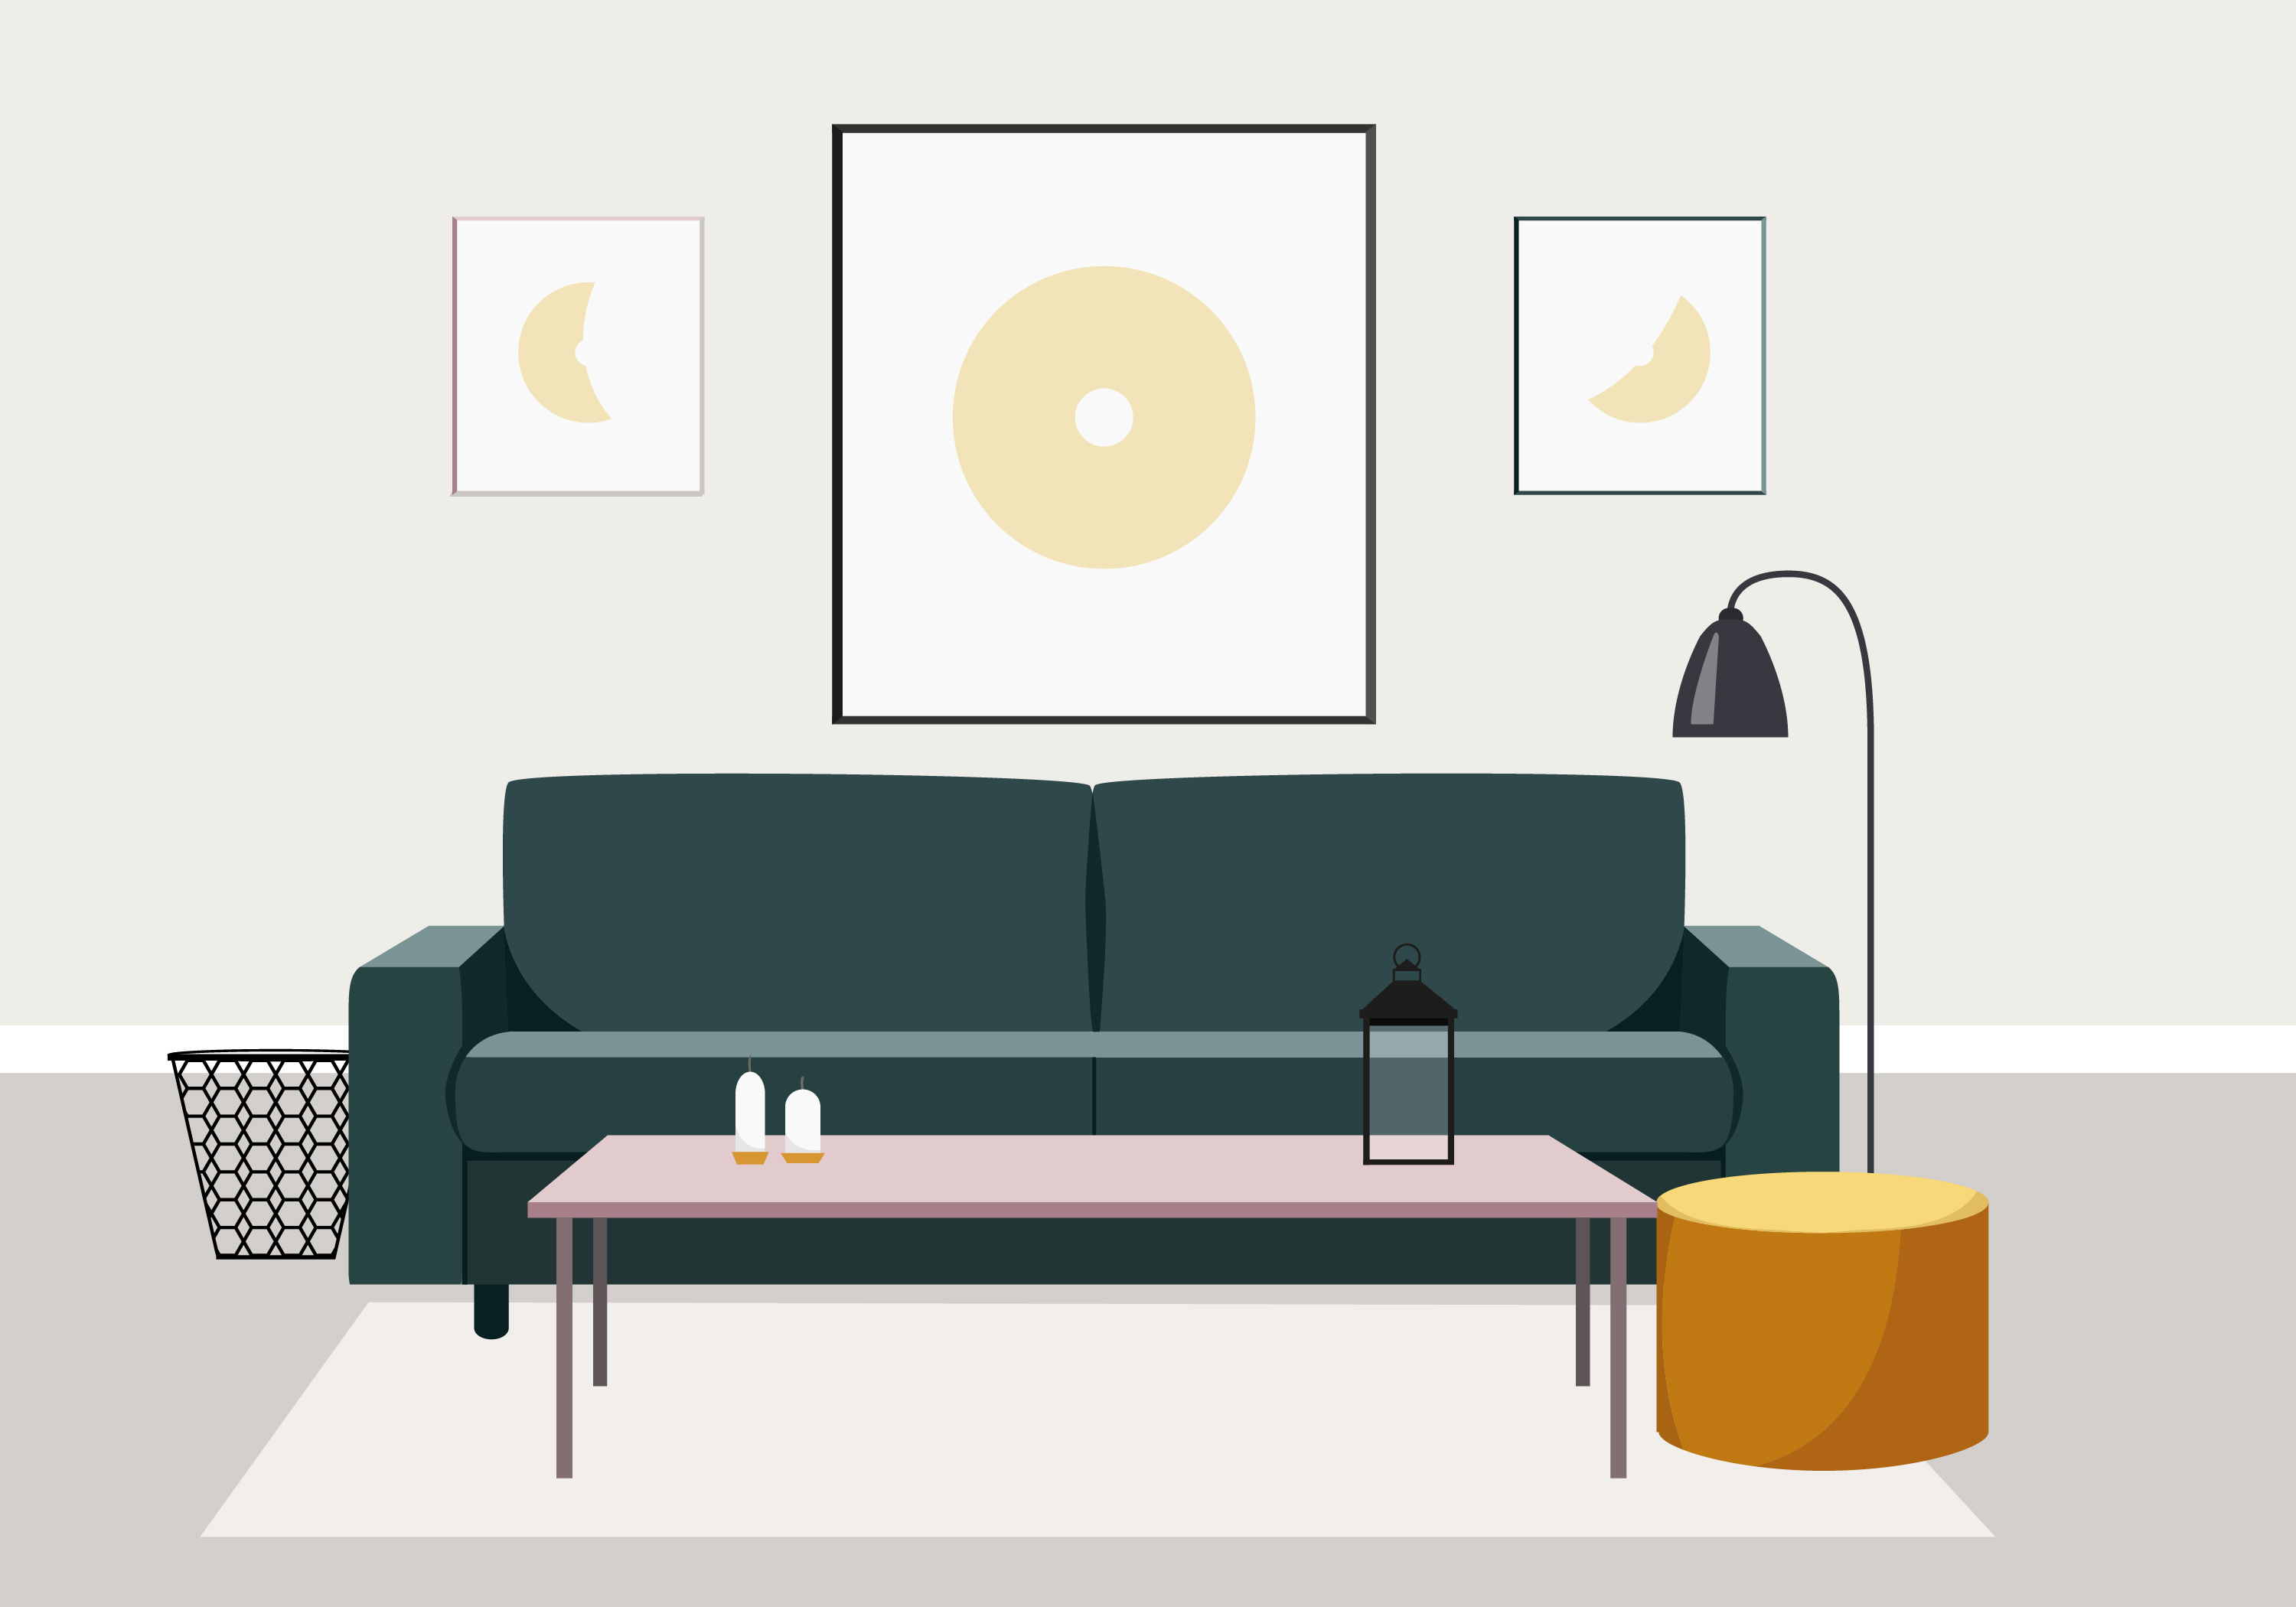 Vector interior design illustration download free vector art stock graphics images for Interior design images free download